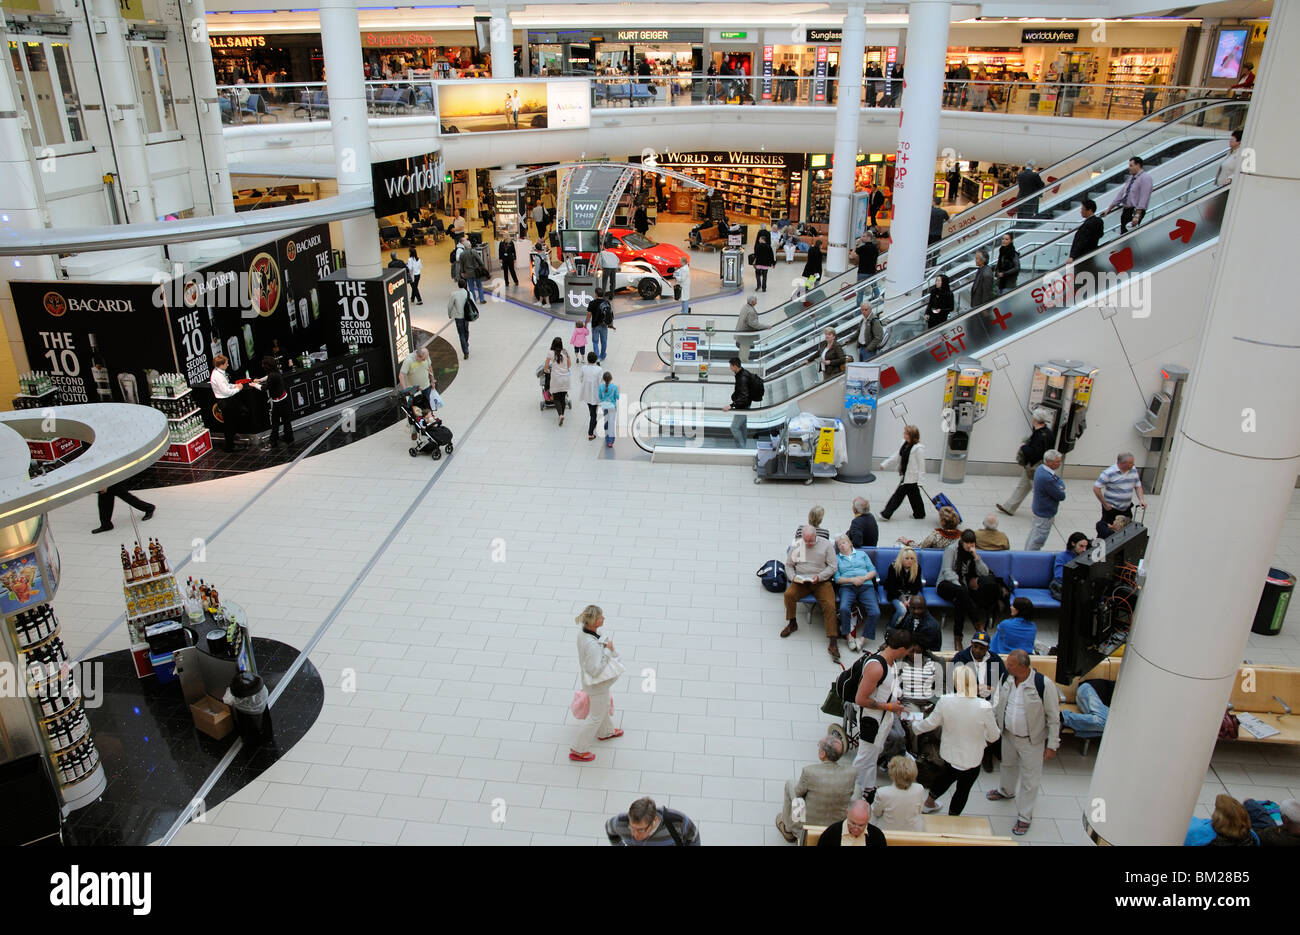 Gatwick South Terminal Shops >> Airport Shopping Area In The South Terminal At London